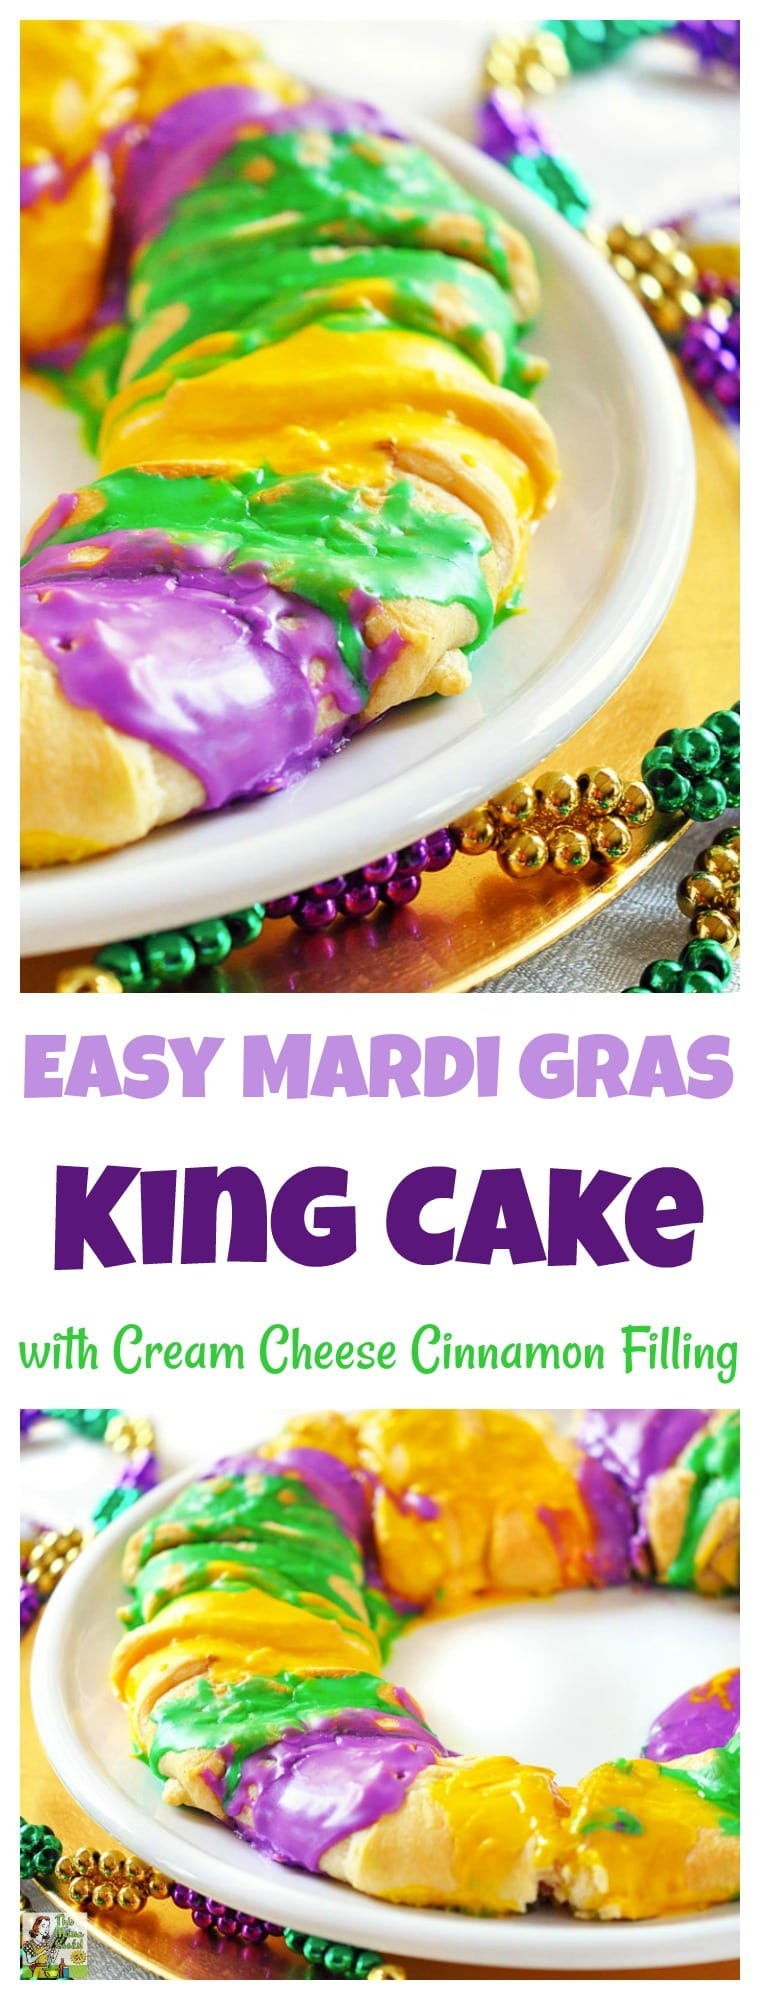 Easy Mardi Gras King Cakes Recipe with Cream Cheese Cinnamon Filling